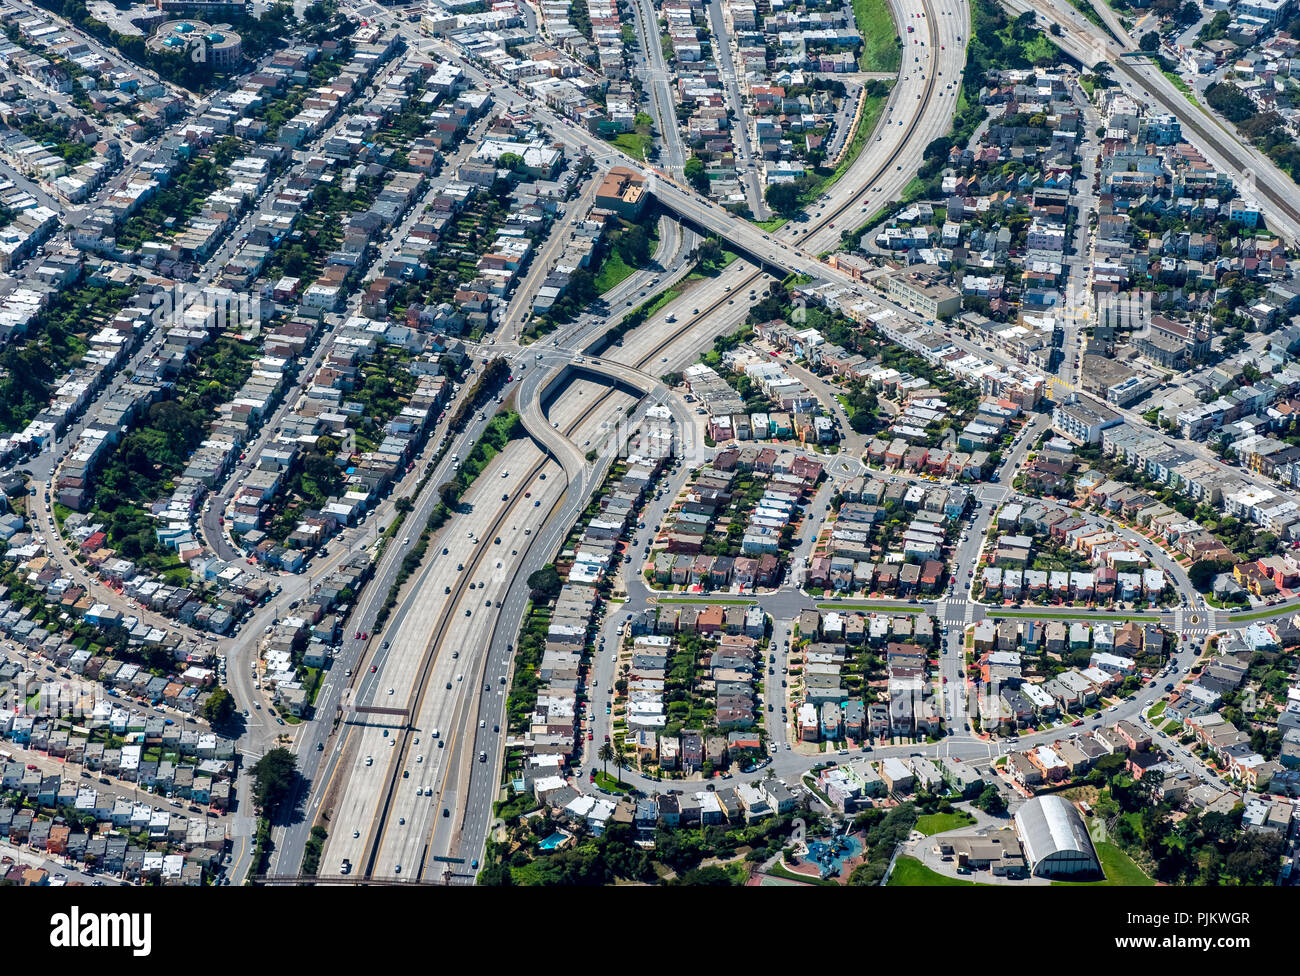 Typical American housing estate at the highway, Noise Pollution, noisy neighborhood, South San Francisco, San Francisco Bay Area, United States of America, California, USA - Stock Image